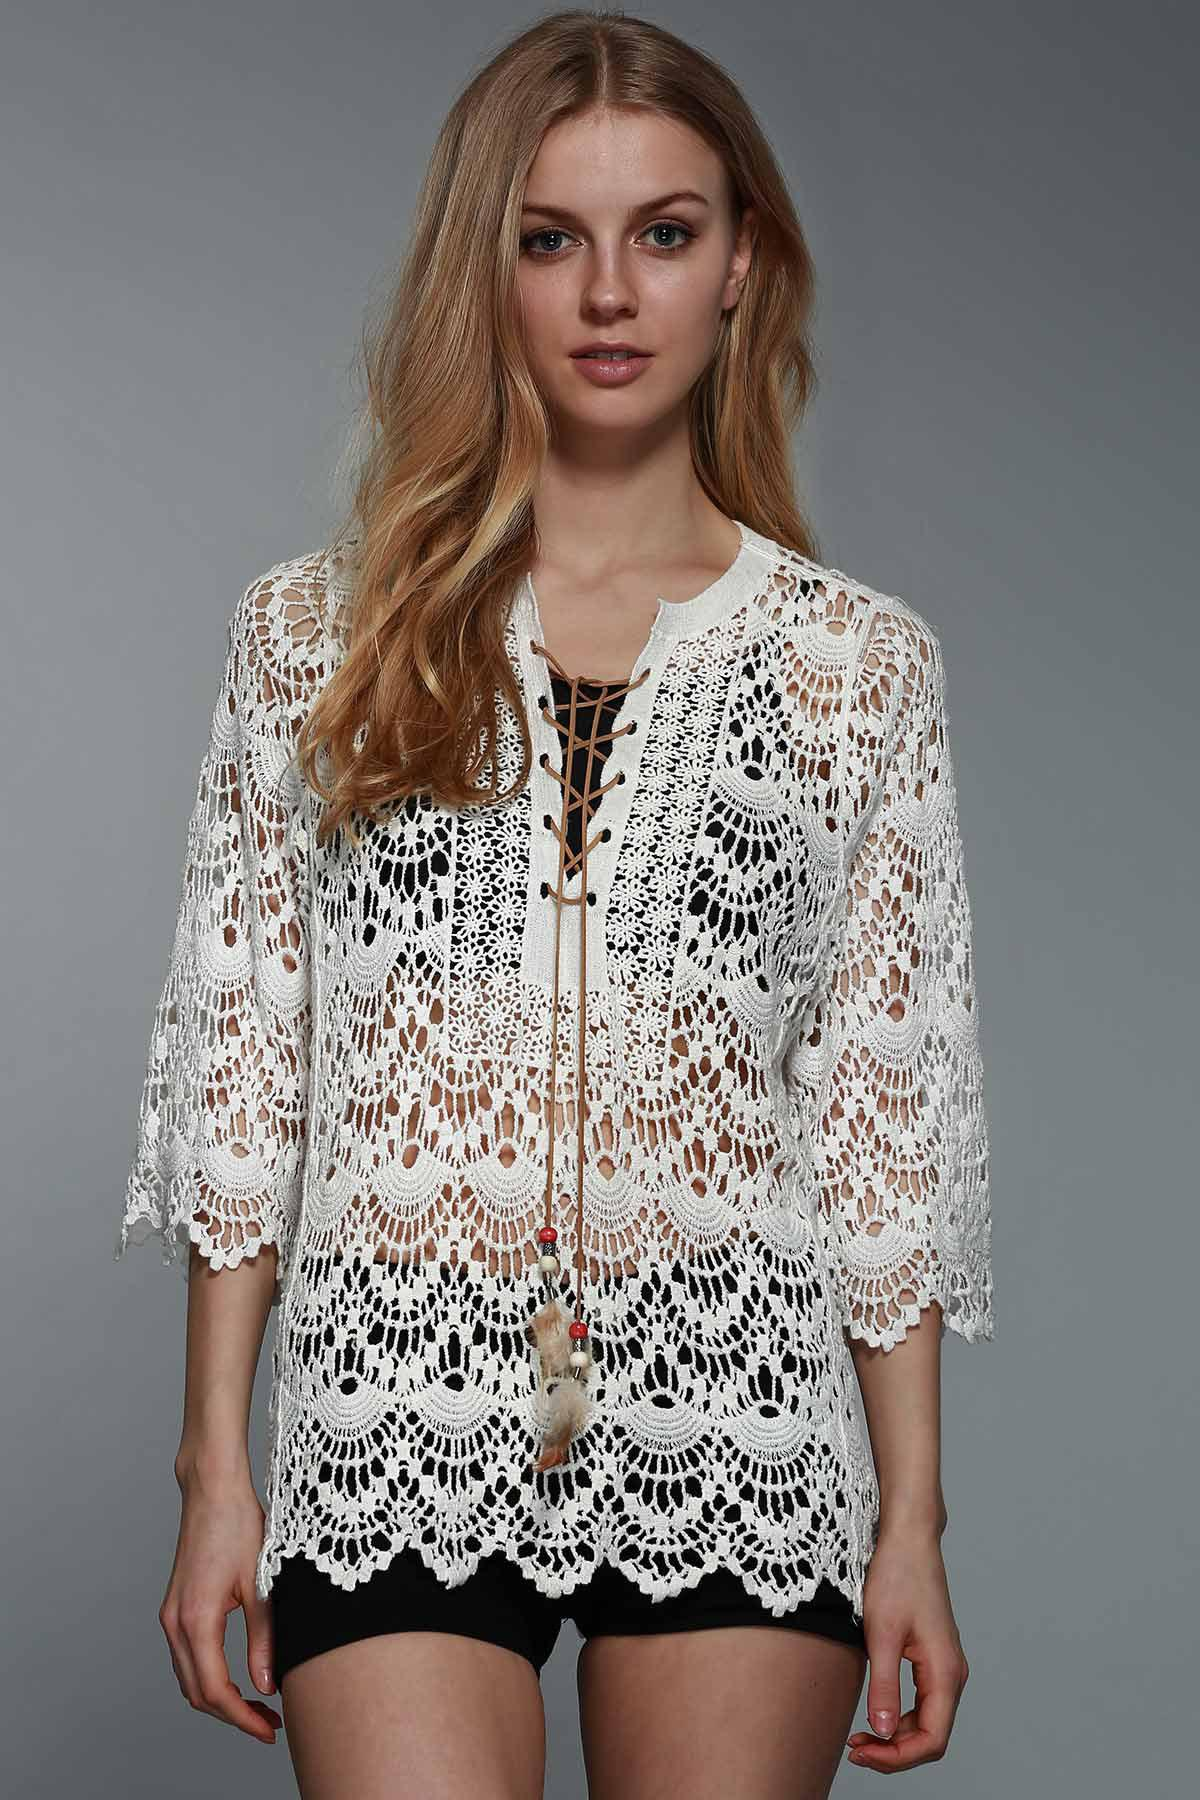 Graceful Round Collar 3/4 Sleeve Hollow Out Lace-Up Crochet Women's White Blouse - WHITE ONE SIZE(FIT SIZE XS TO M)